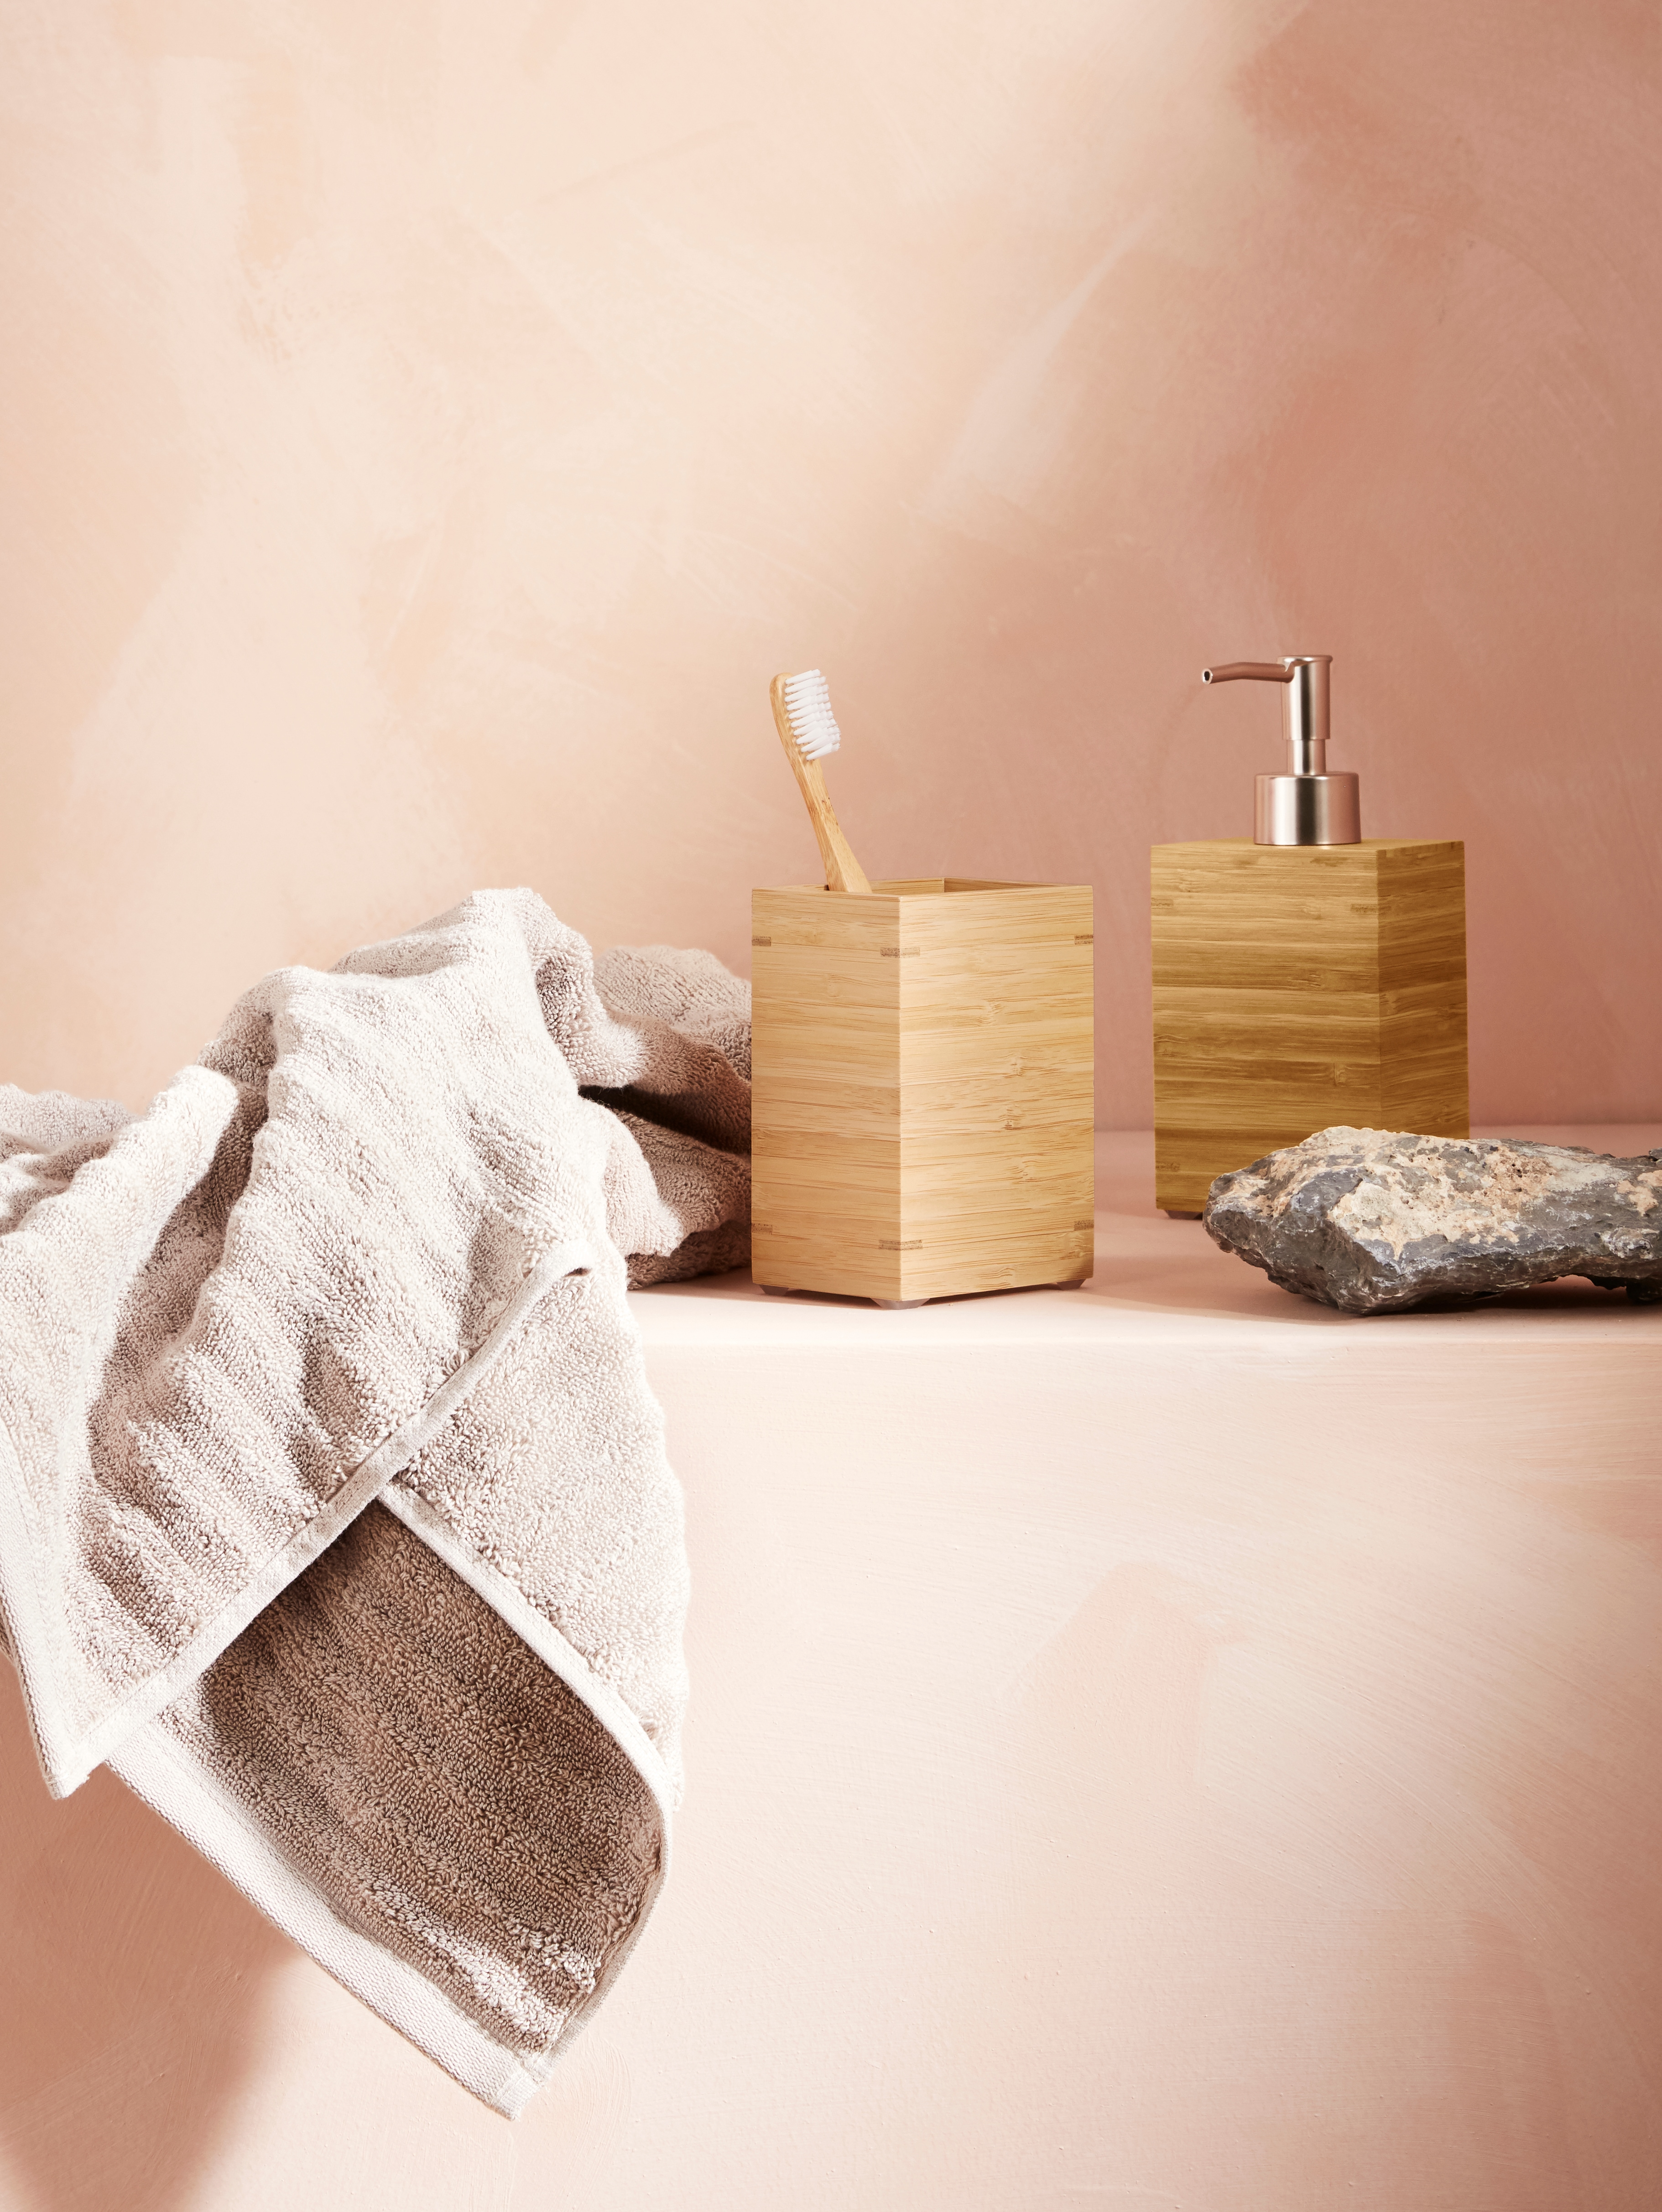 Bathroom with pink wall, boxy bamboo toothbrush holder and bamboo soap dispenser, with beige terrycloth towel.